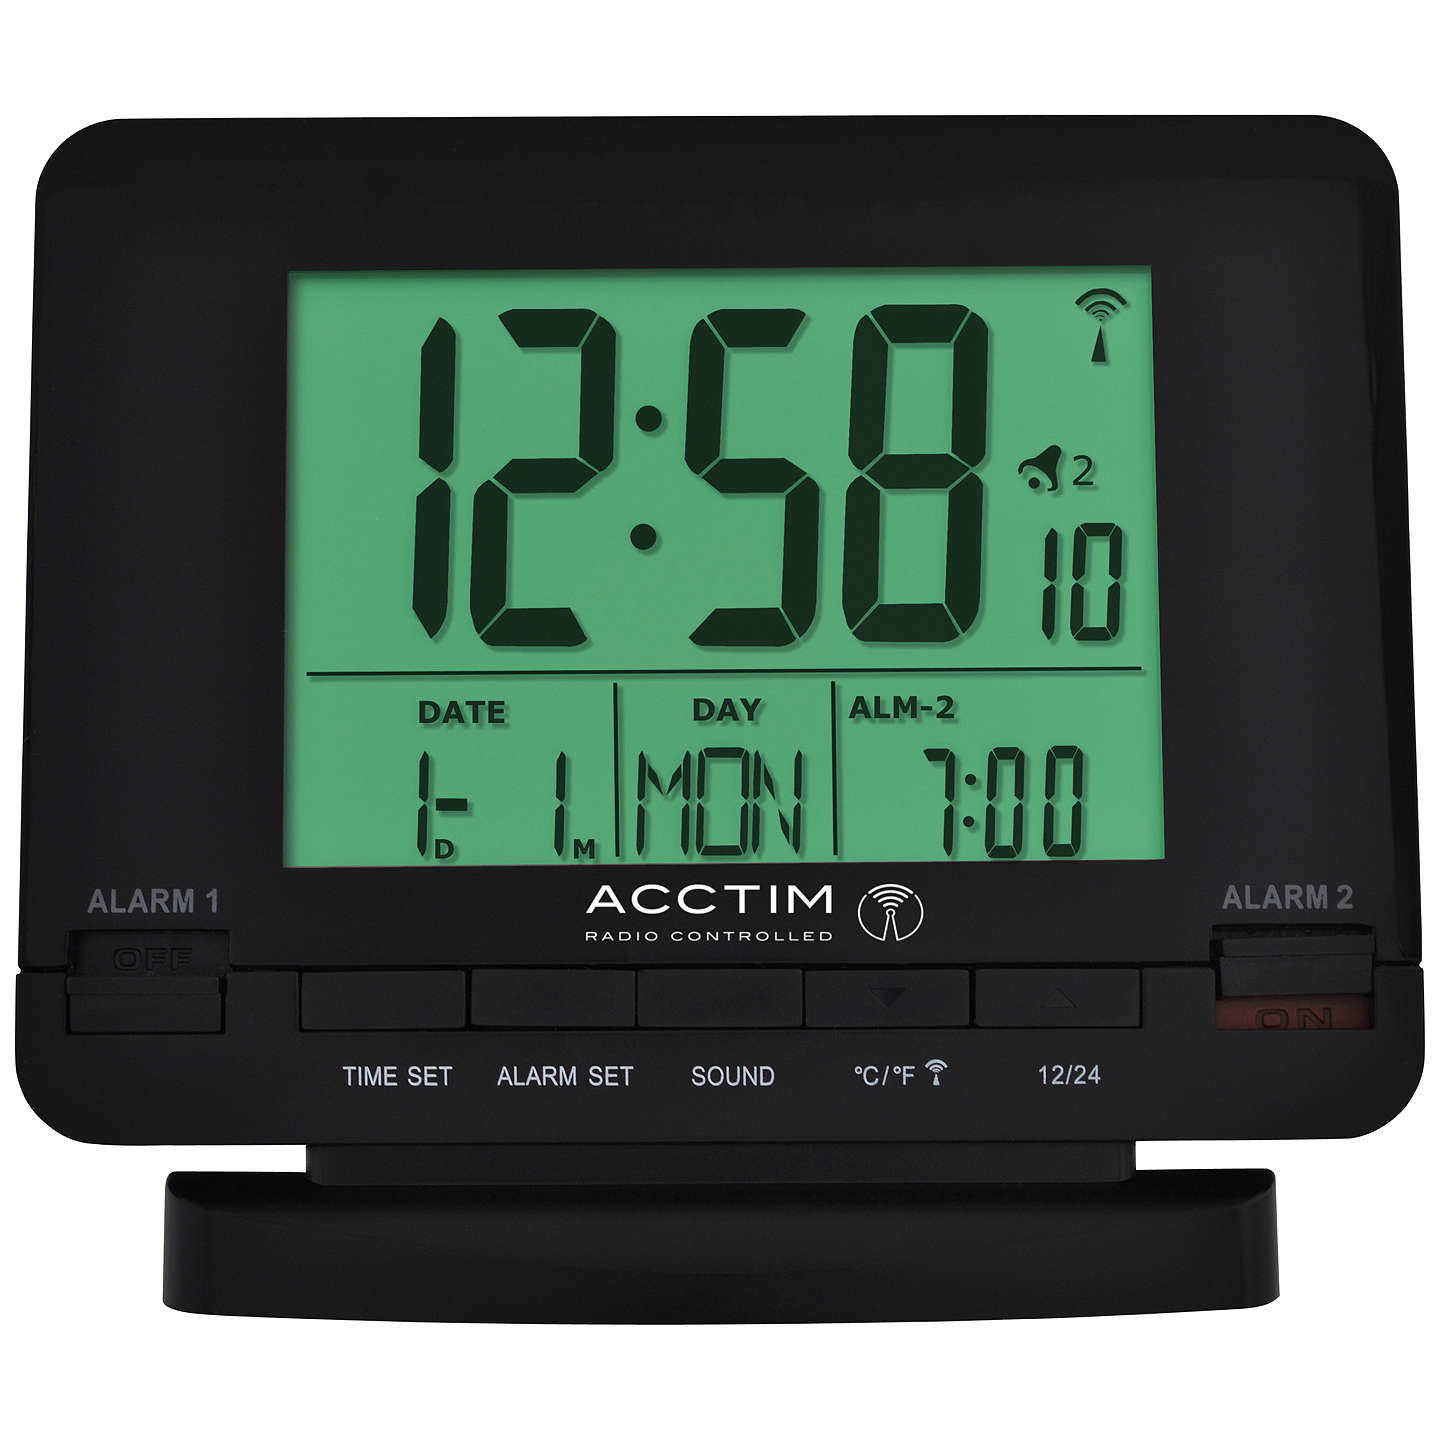 BuyAcctim Radio Controlled Couples Alarm Clock Black Online At Johnlewis